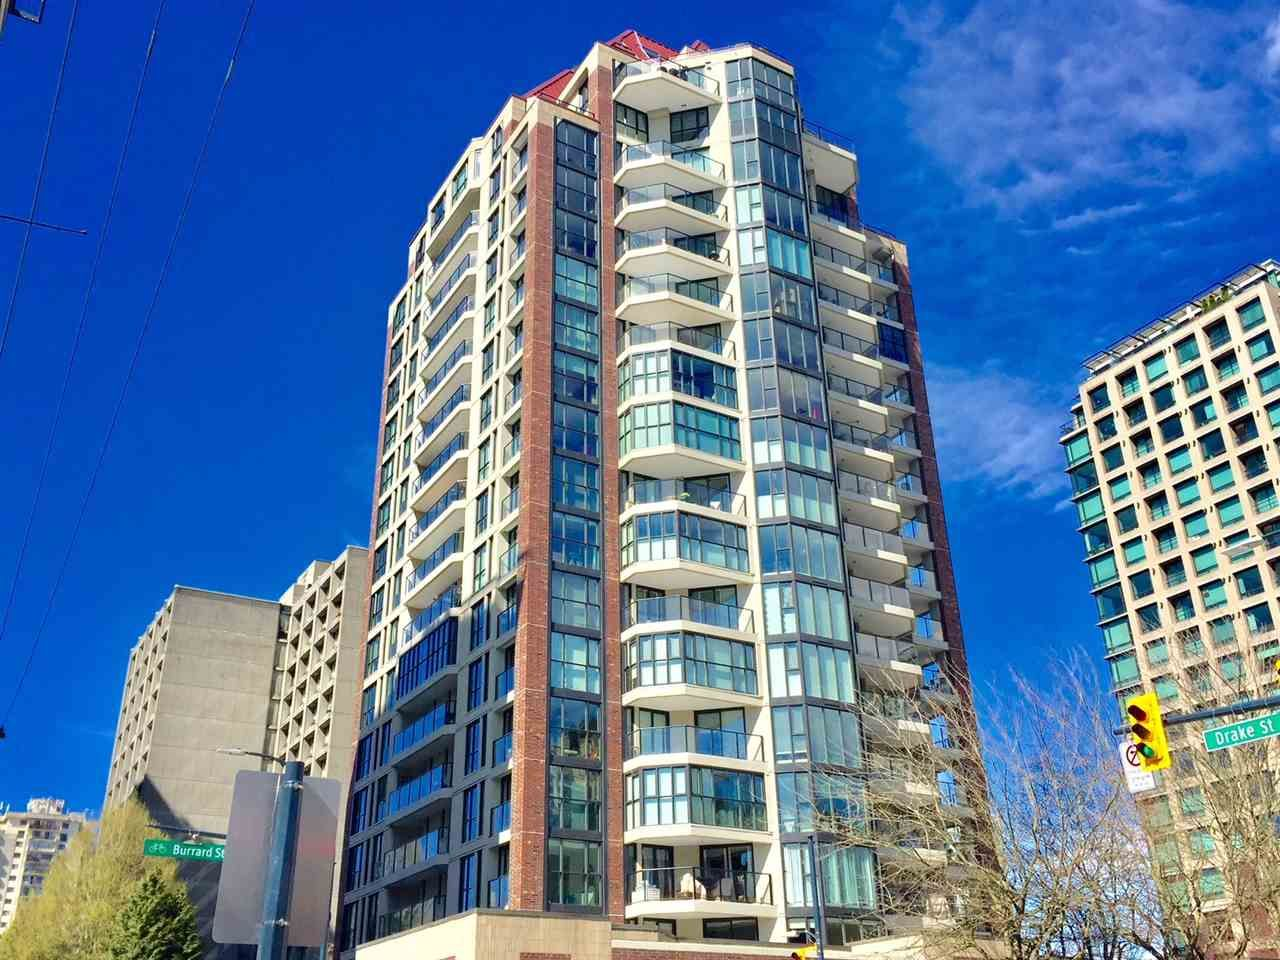 """Main Photo: 204 1010 BURNABY Street in Vancouver: West End VW Condo for sale in """"THE ELLINGTON"""" (Vancouver West)  : MLS®# R2258378"""